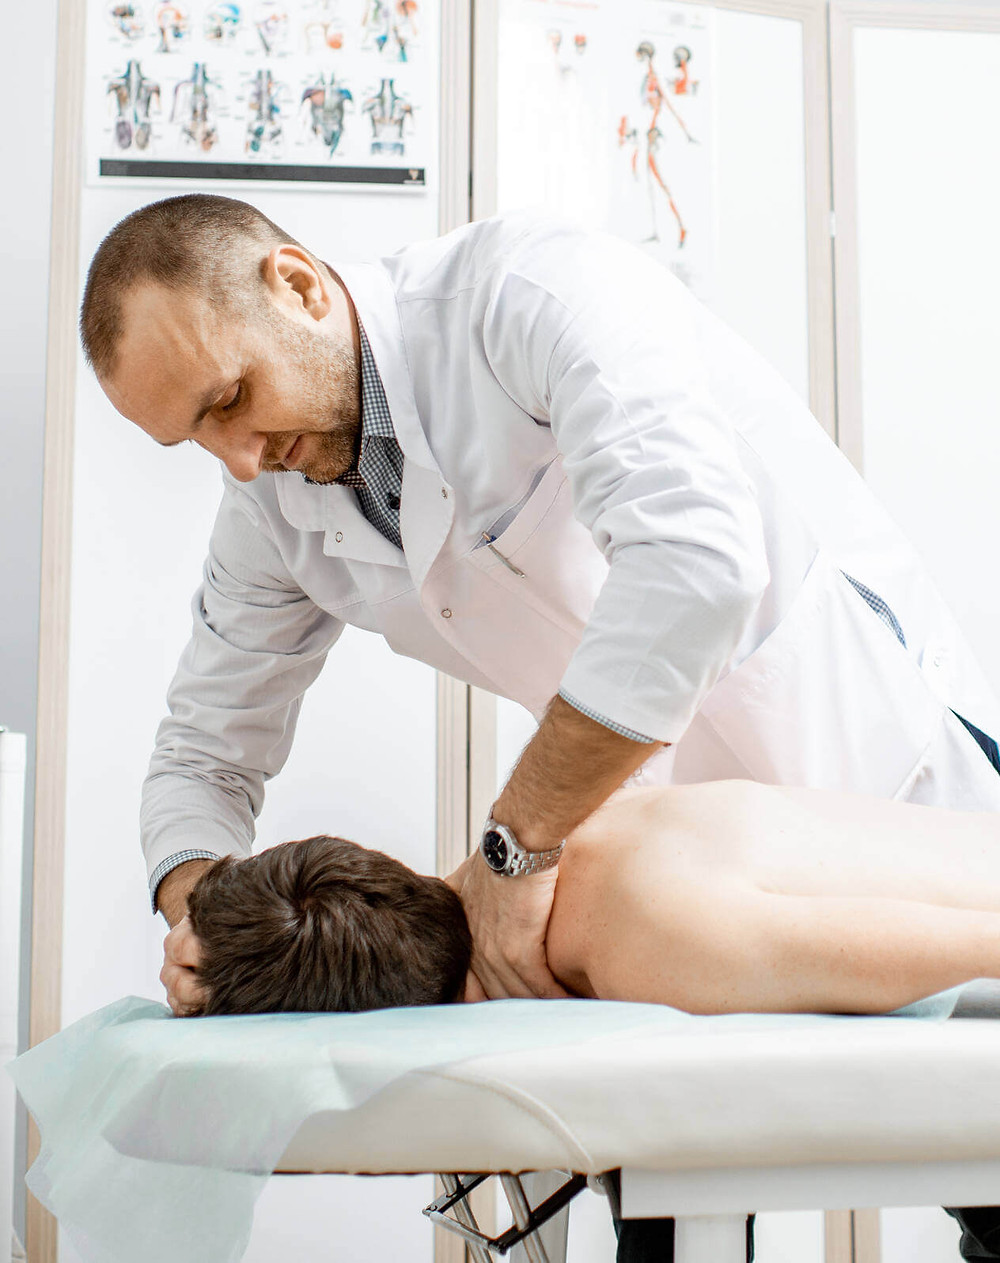 chiropractor doing manual therapy for neck pain relief